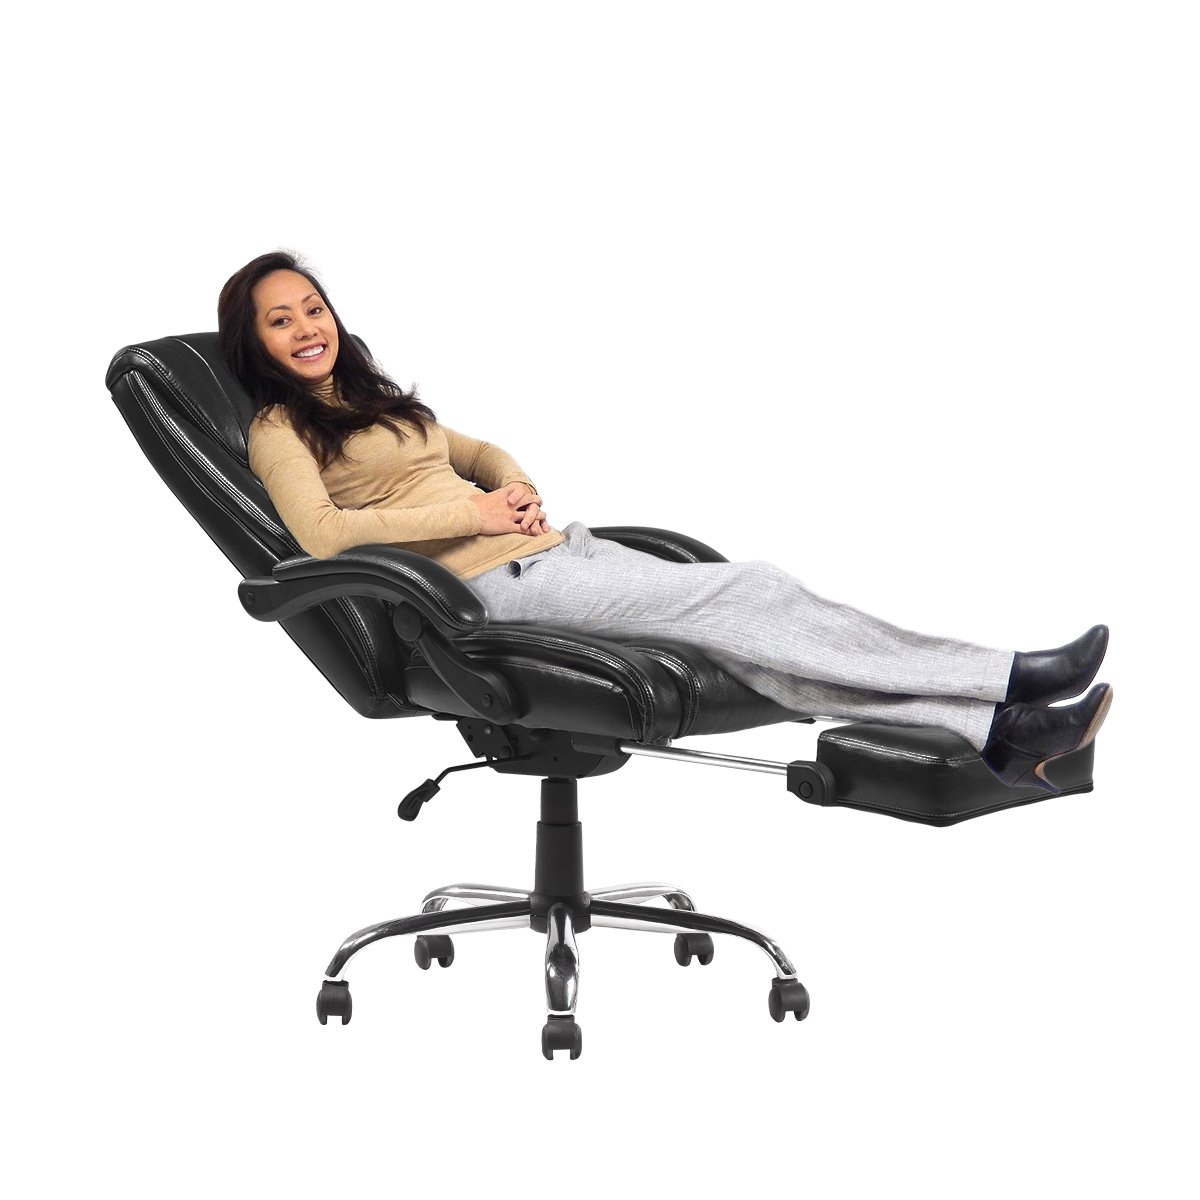 YAMASORO Reclining Office Chair High Back ,Ergonomic Design Computer Napping Chair Leather with Footrest Thick Padding for Lumbar Support